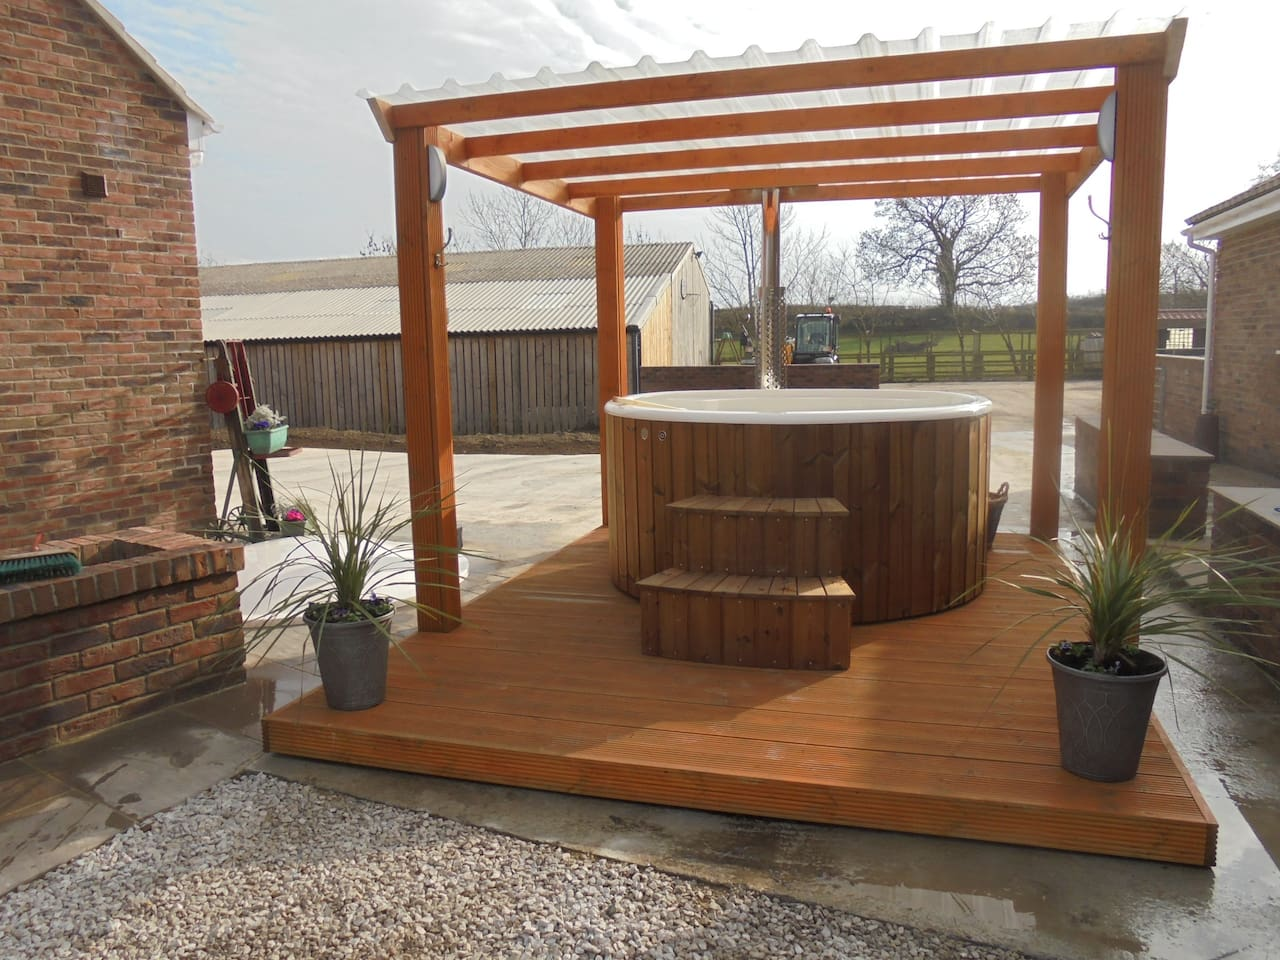 our new 6 person wood fired hot tub for hire, towels and robes included and covered pool in garden available, when you book our new cottage which sleeps 6 near knaresborough north yorkshire